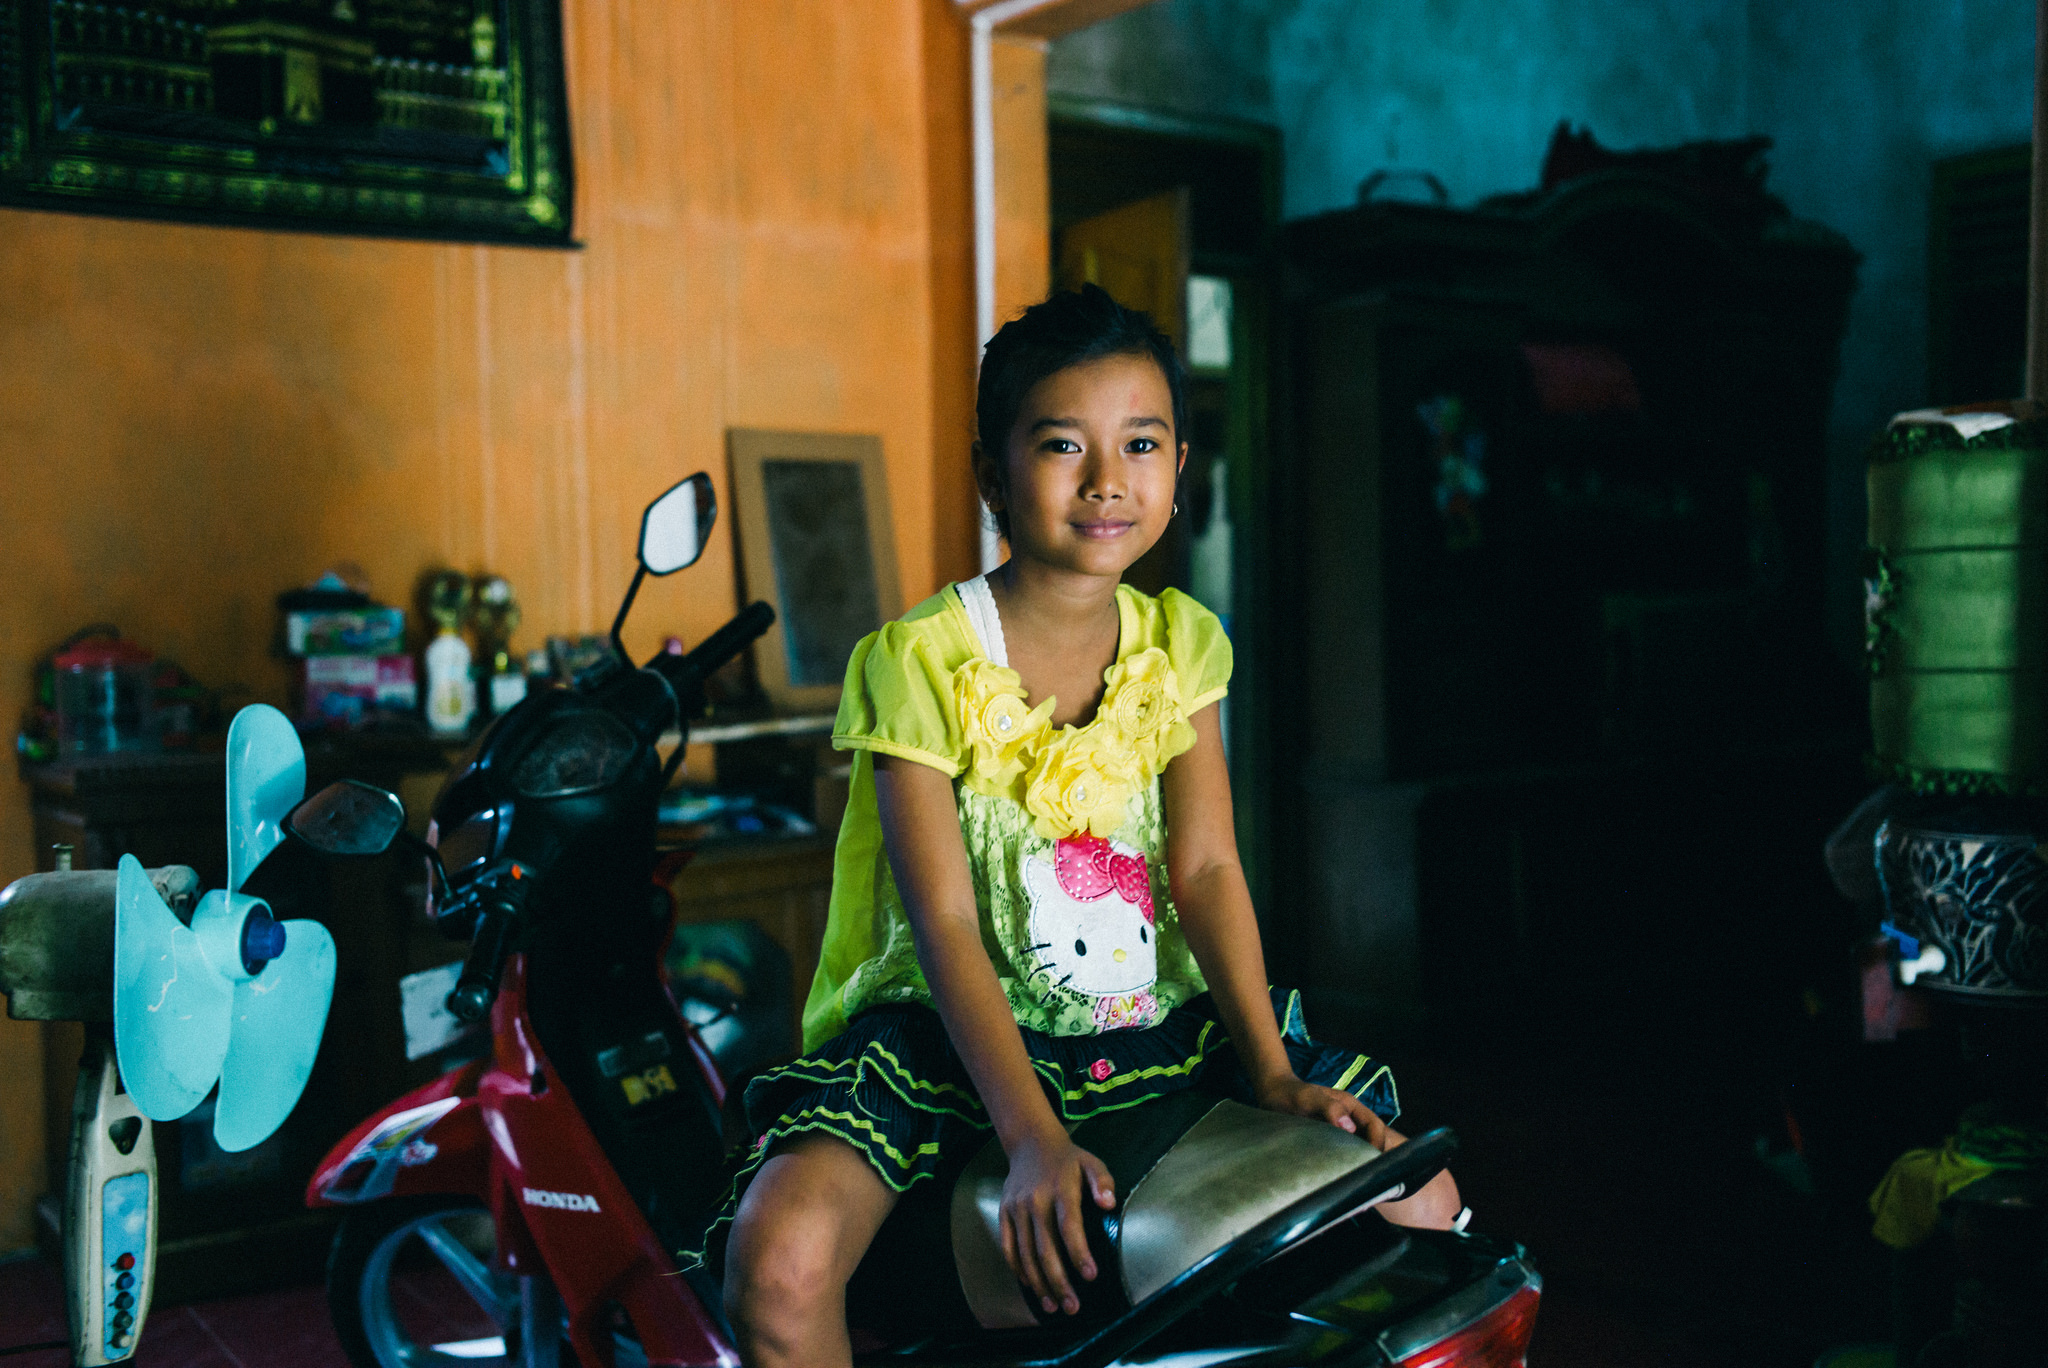 Erni's daughter sitting on a moped